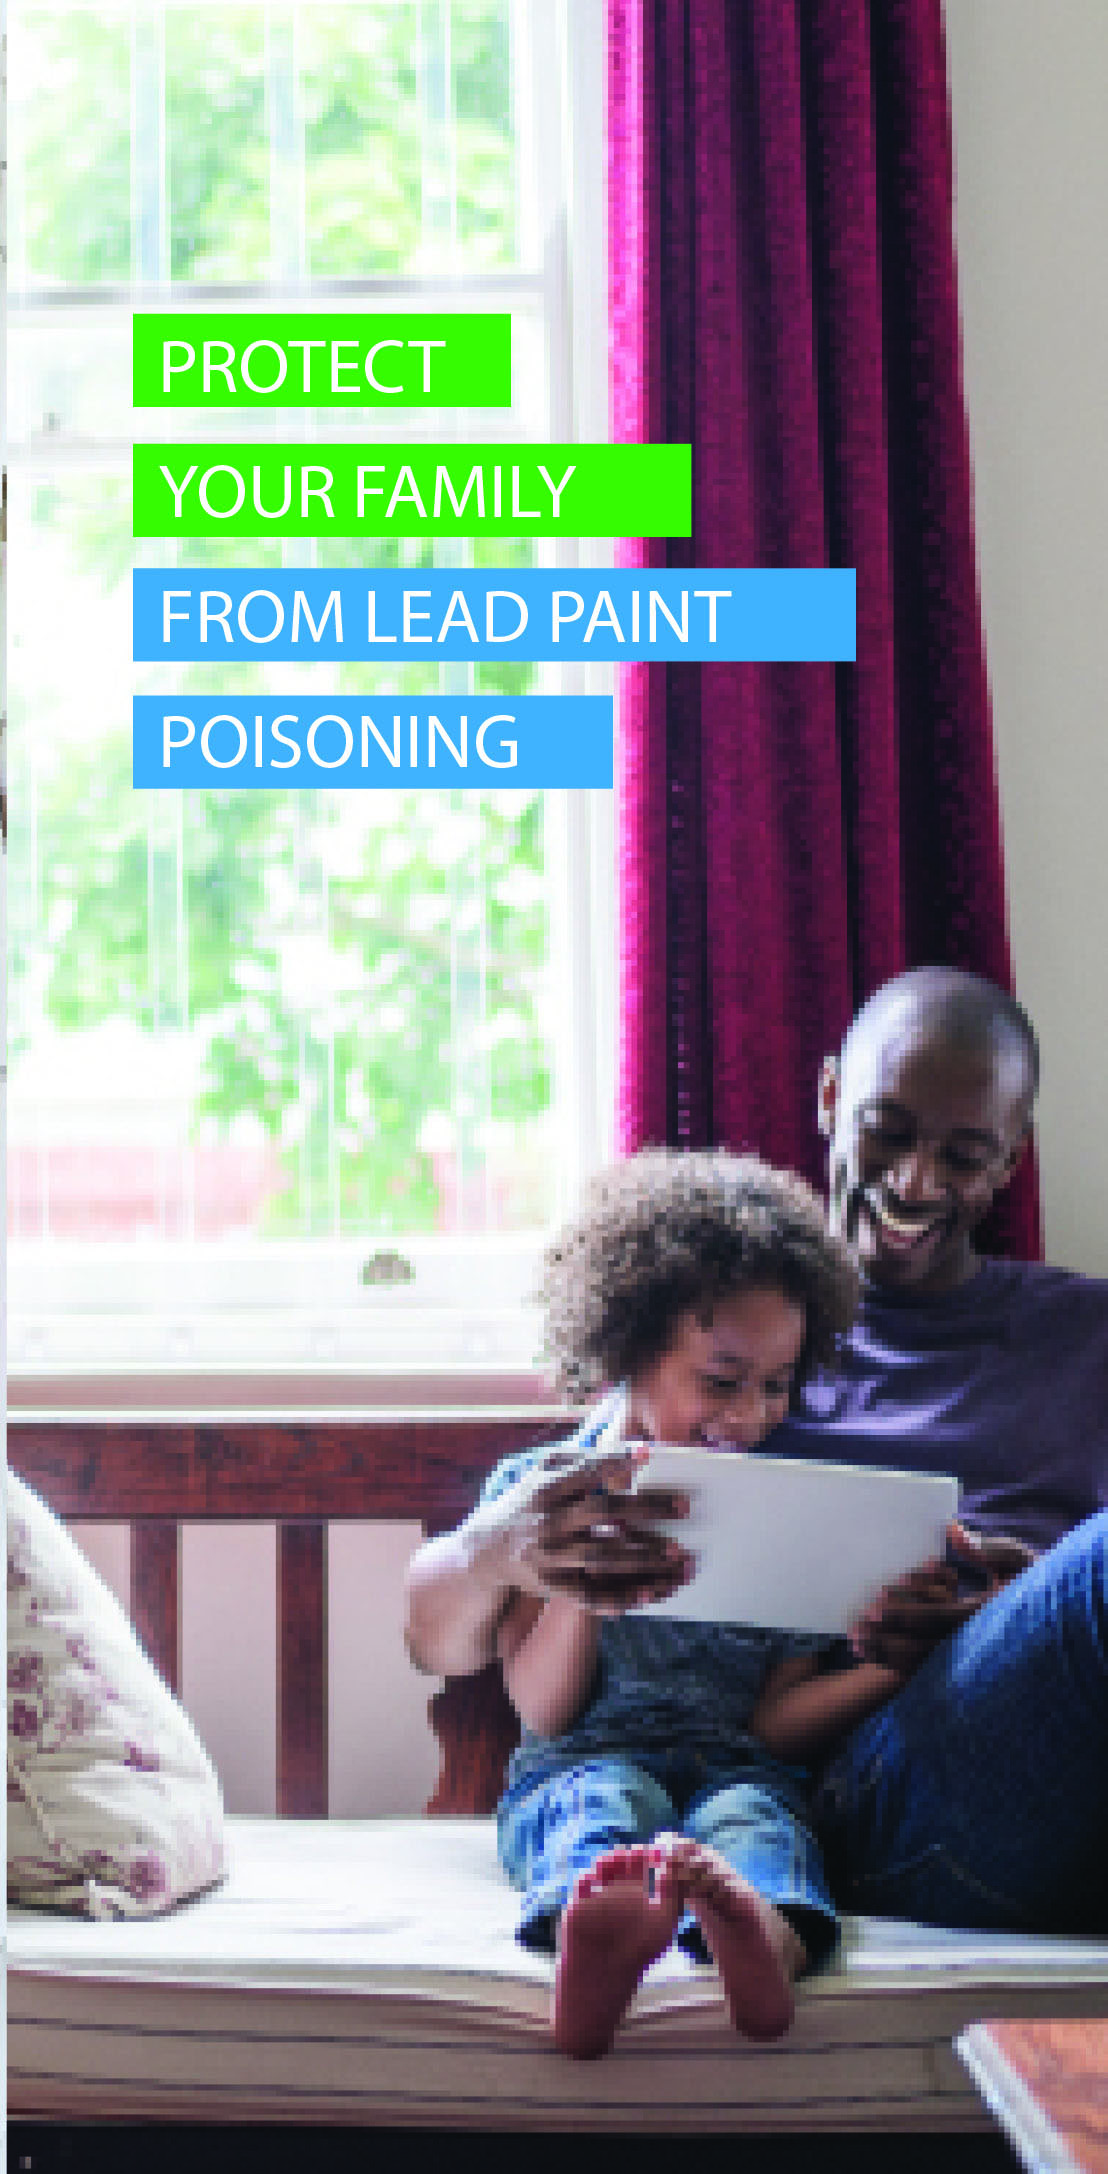 Protect your family from lead paint poisoning